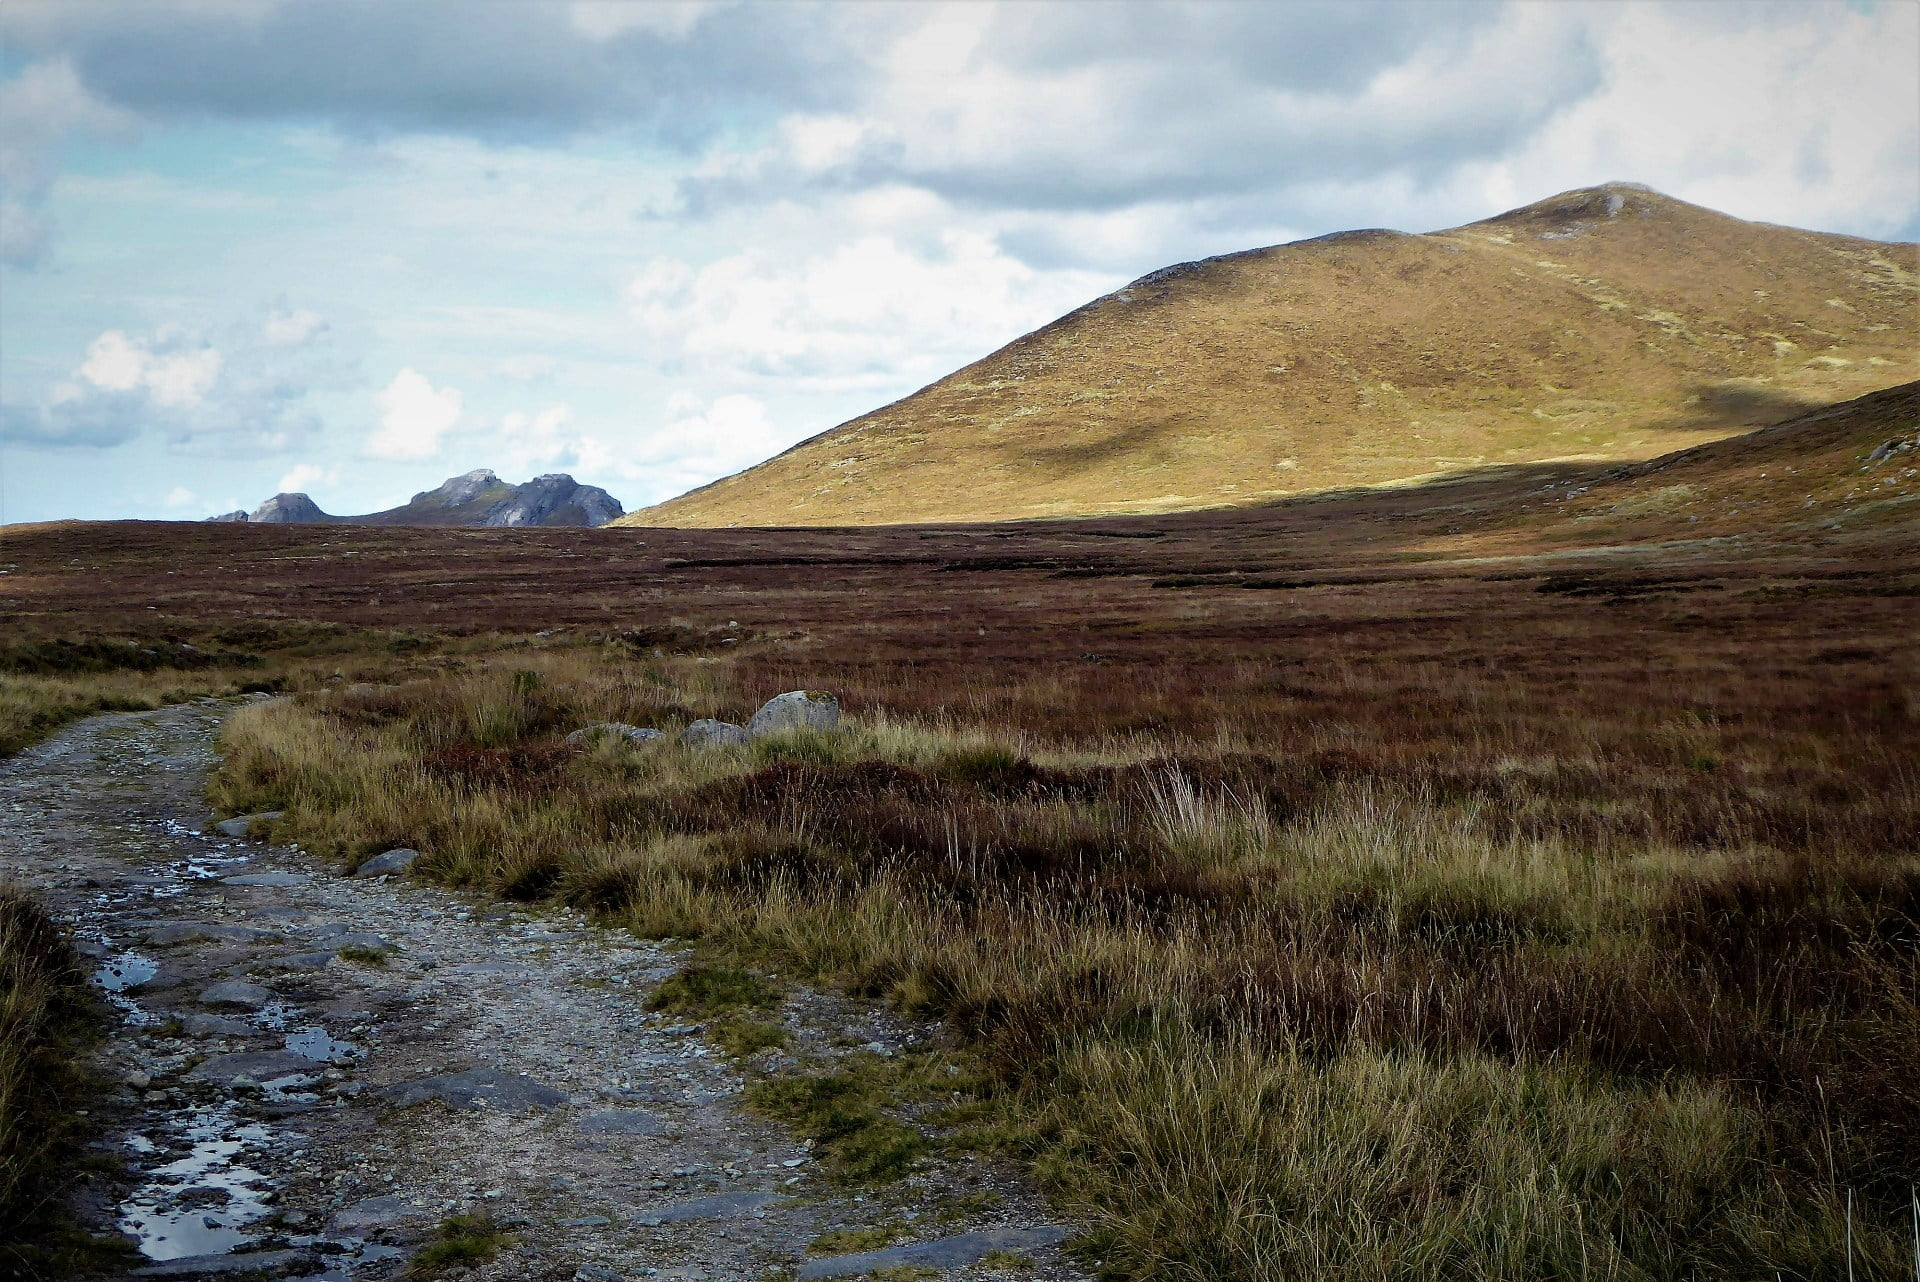 https://walkni.com/mourne-mountains/mourne-way/